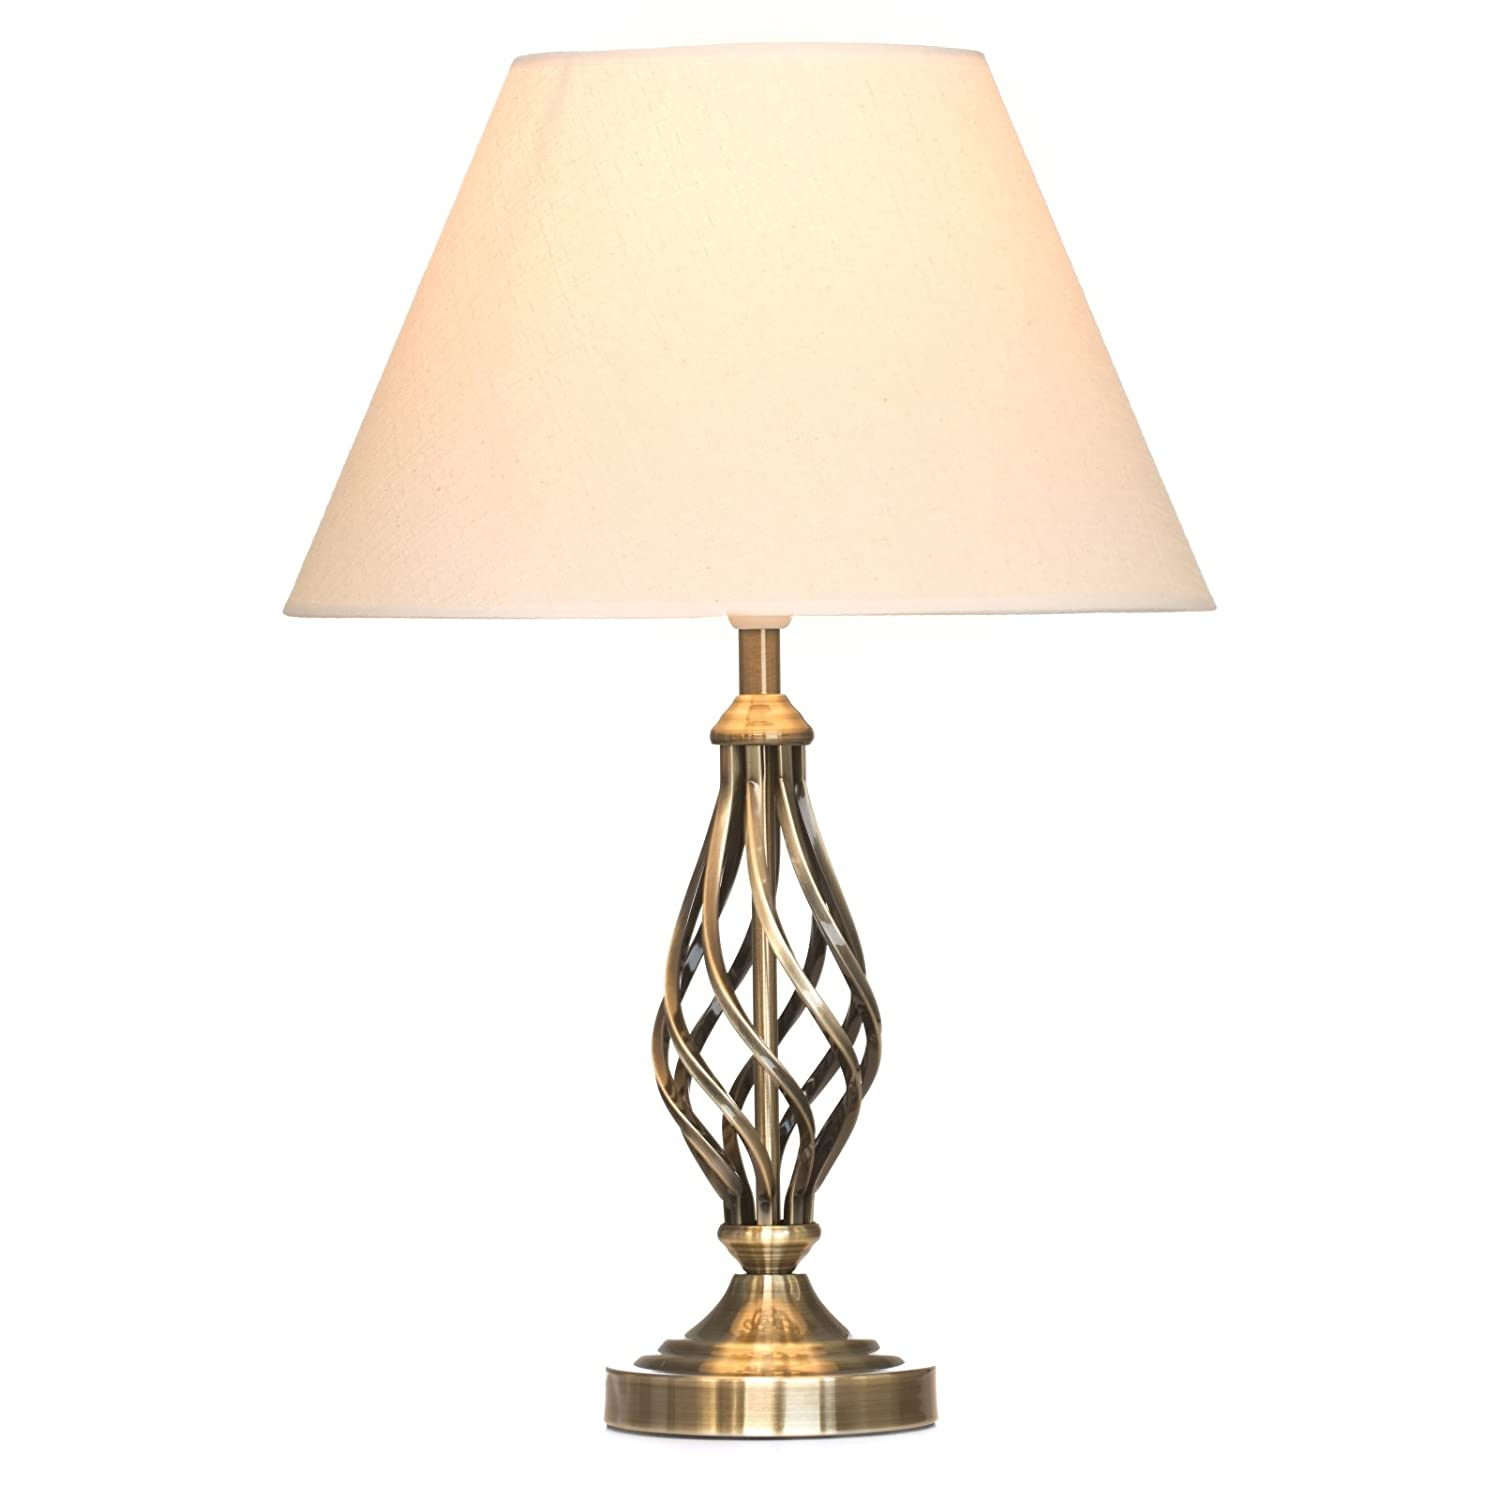 Kingswood barley twist traditional table lamp for Floor lamp with table